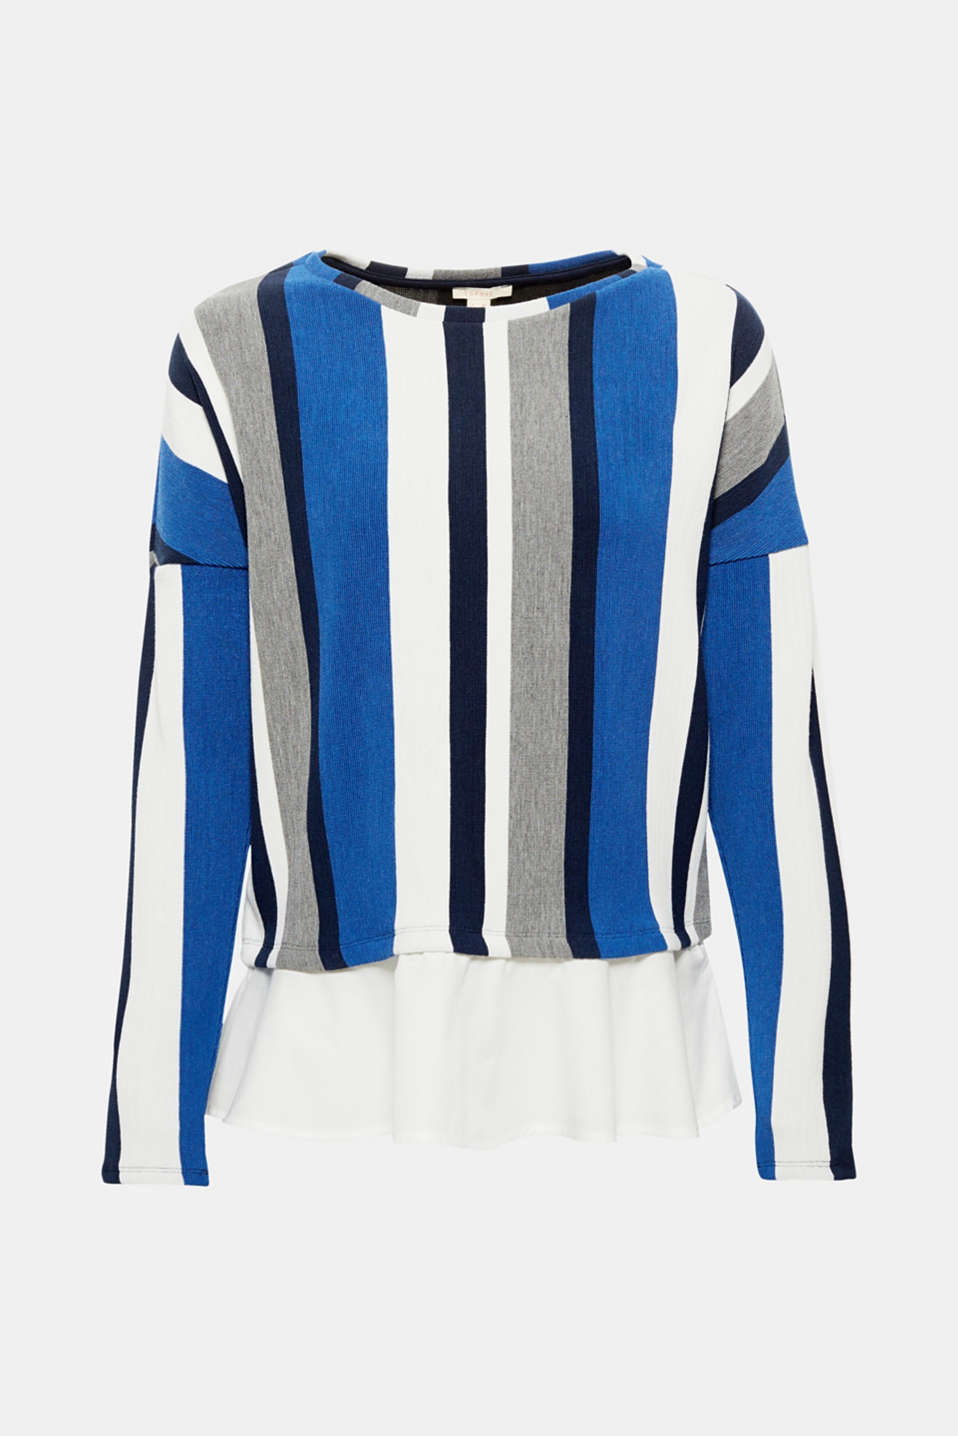 Distinctive vertical stripes, a fine texture and cloth hem give this long sleeve top made of somewhat firmer jersey with added stretch for comfort its cool look with a playful touch!